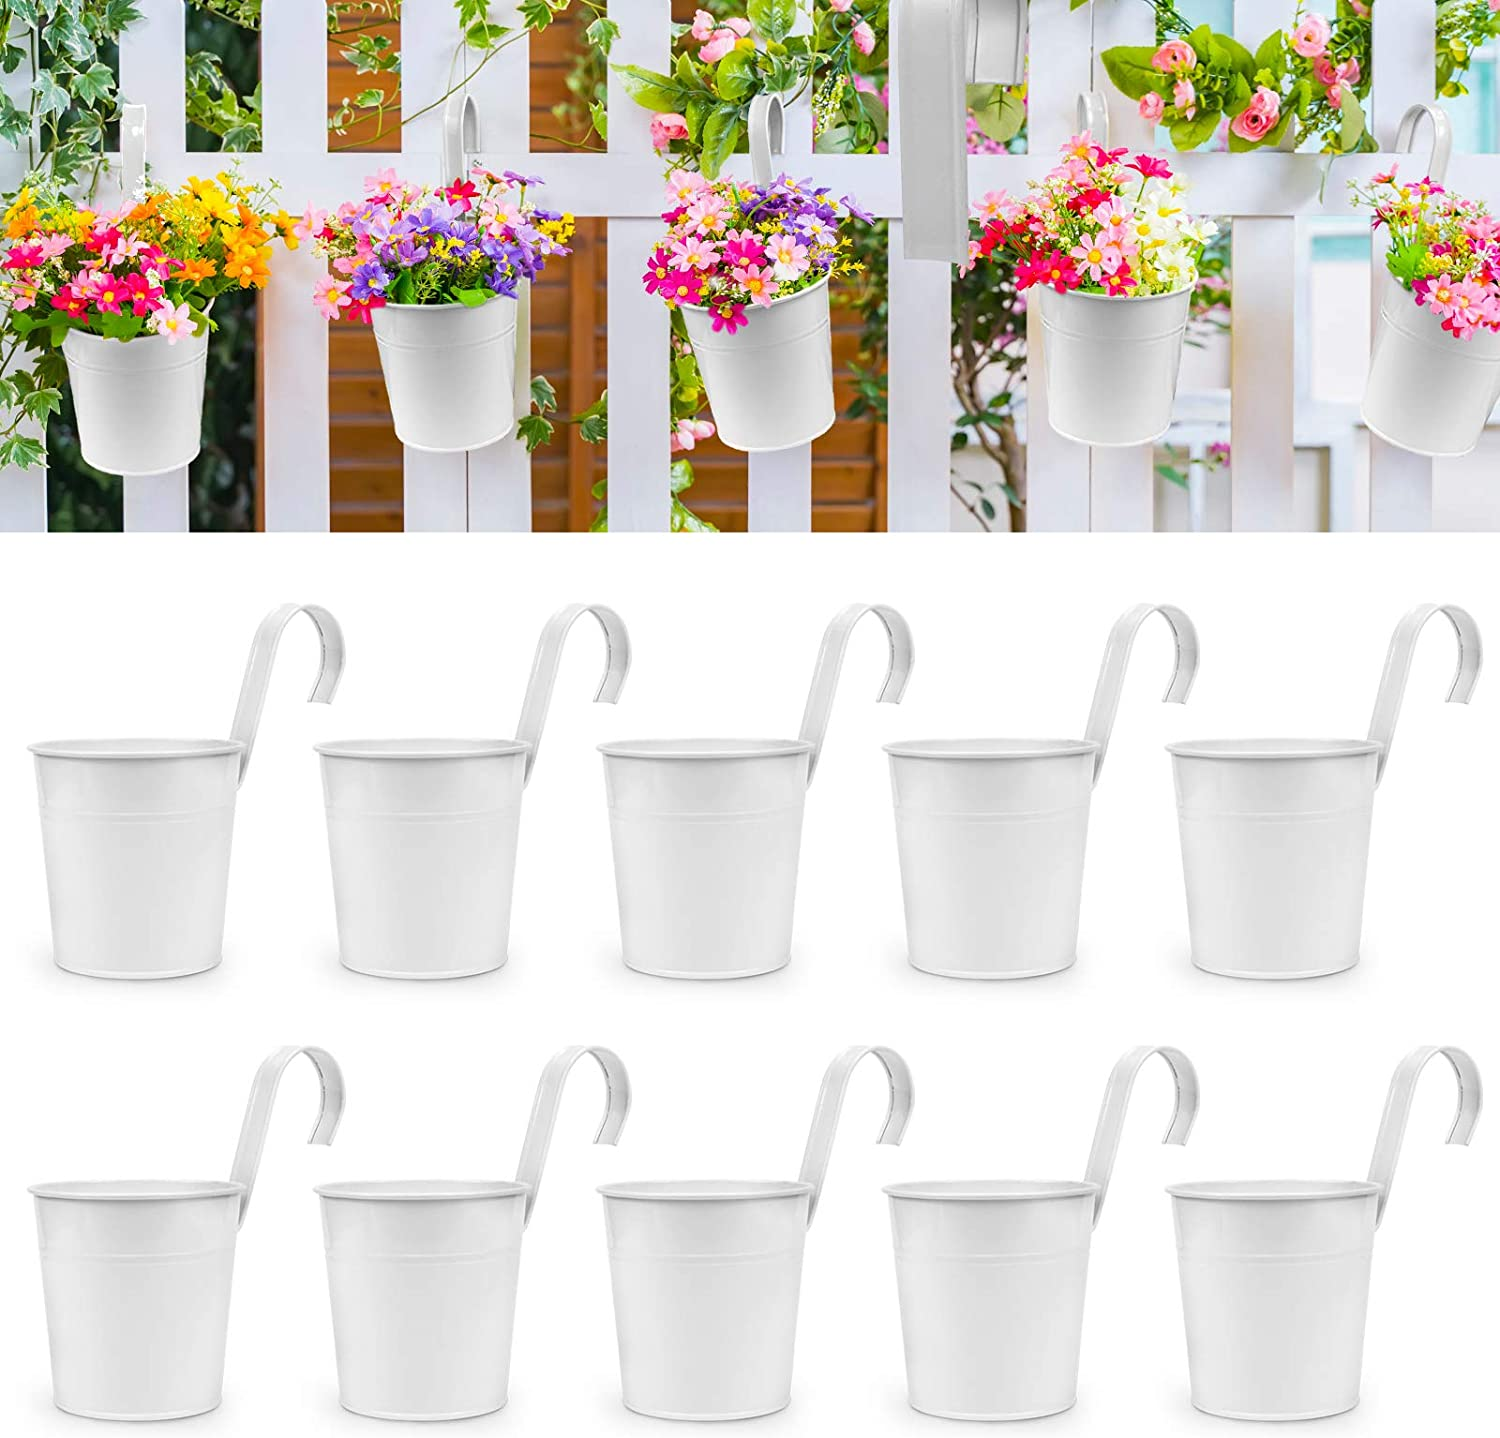 OGIMA 10Pcs Hanging Flower Pots, Metal Iron Wall Planter Indoor/Outdoor for Railing Fence Balcony Garden Home Decoration with Detachable Hooks